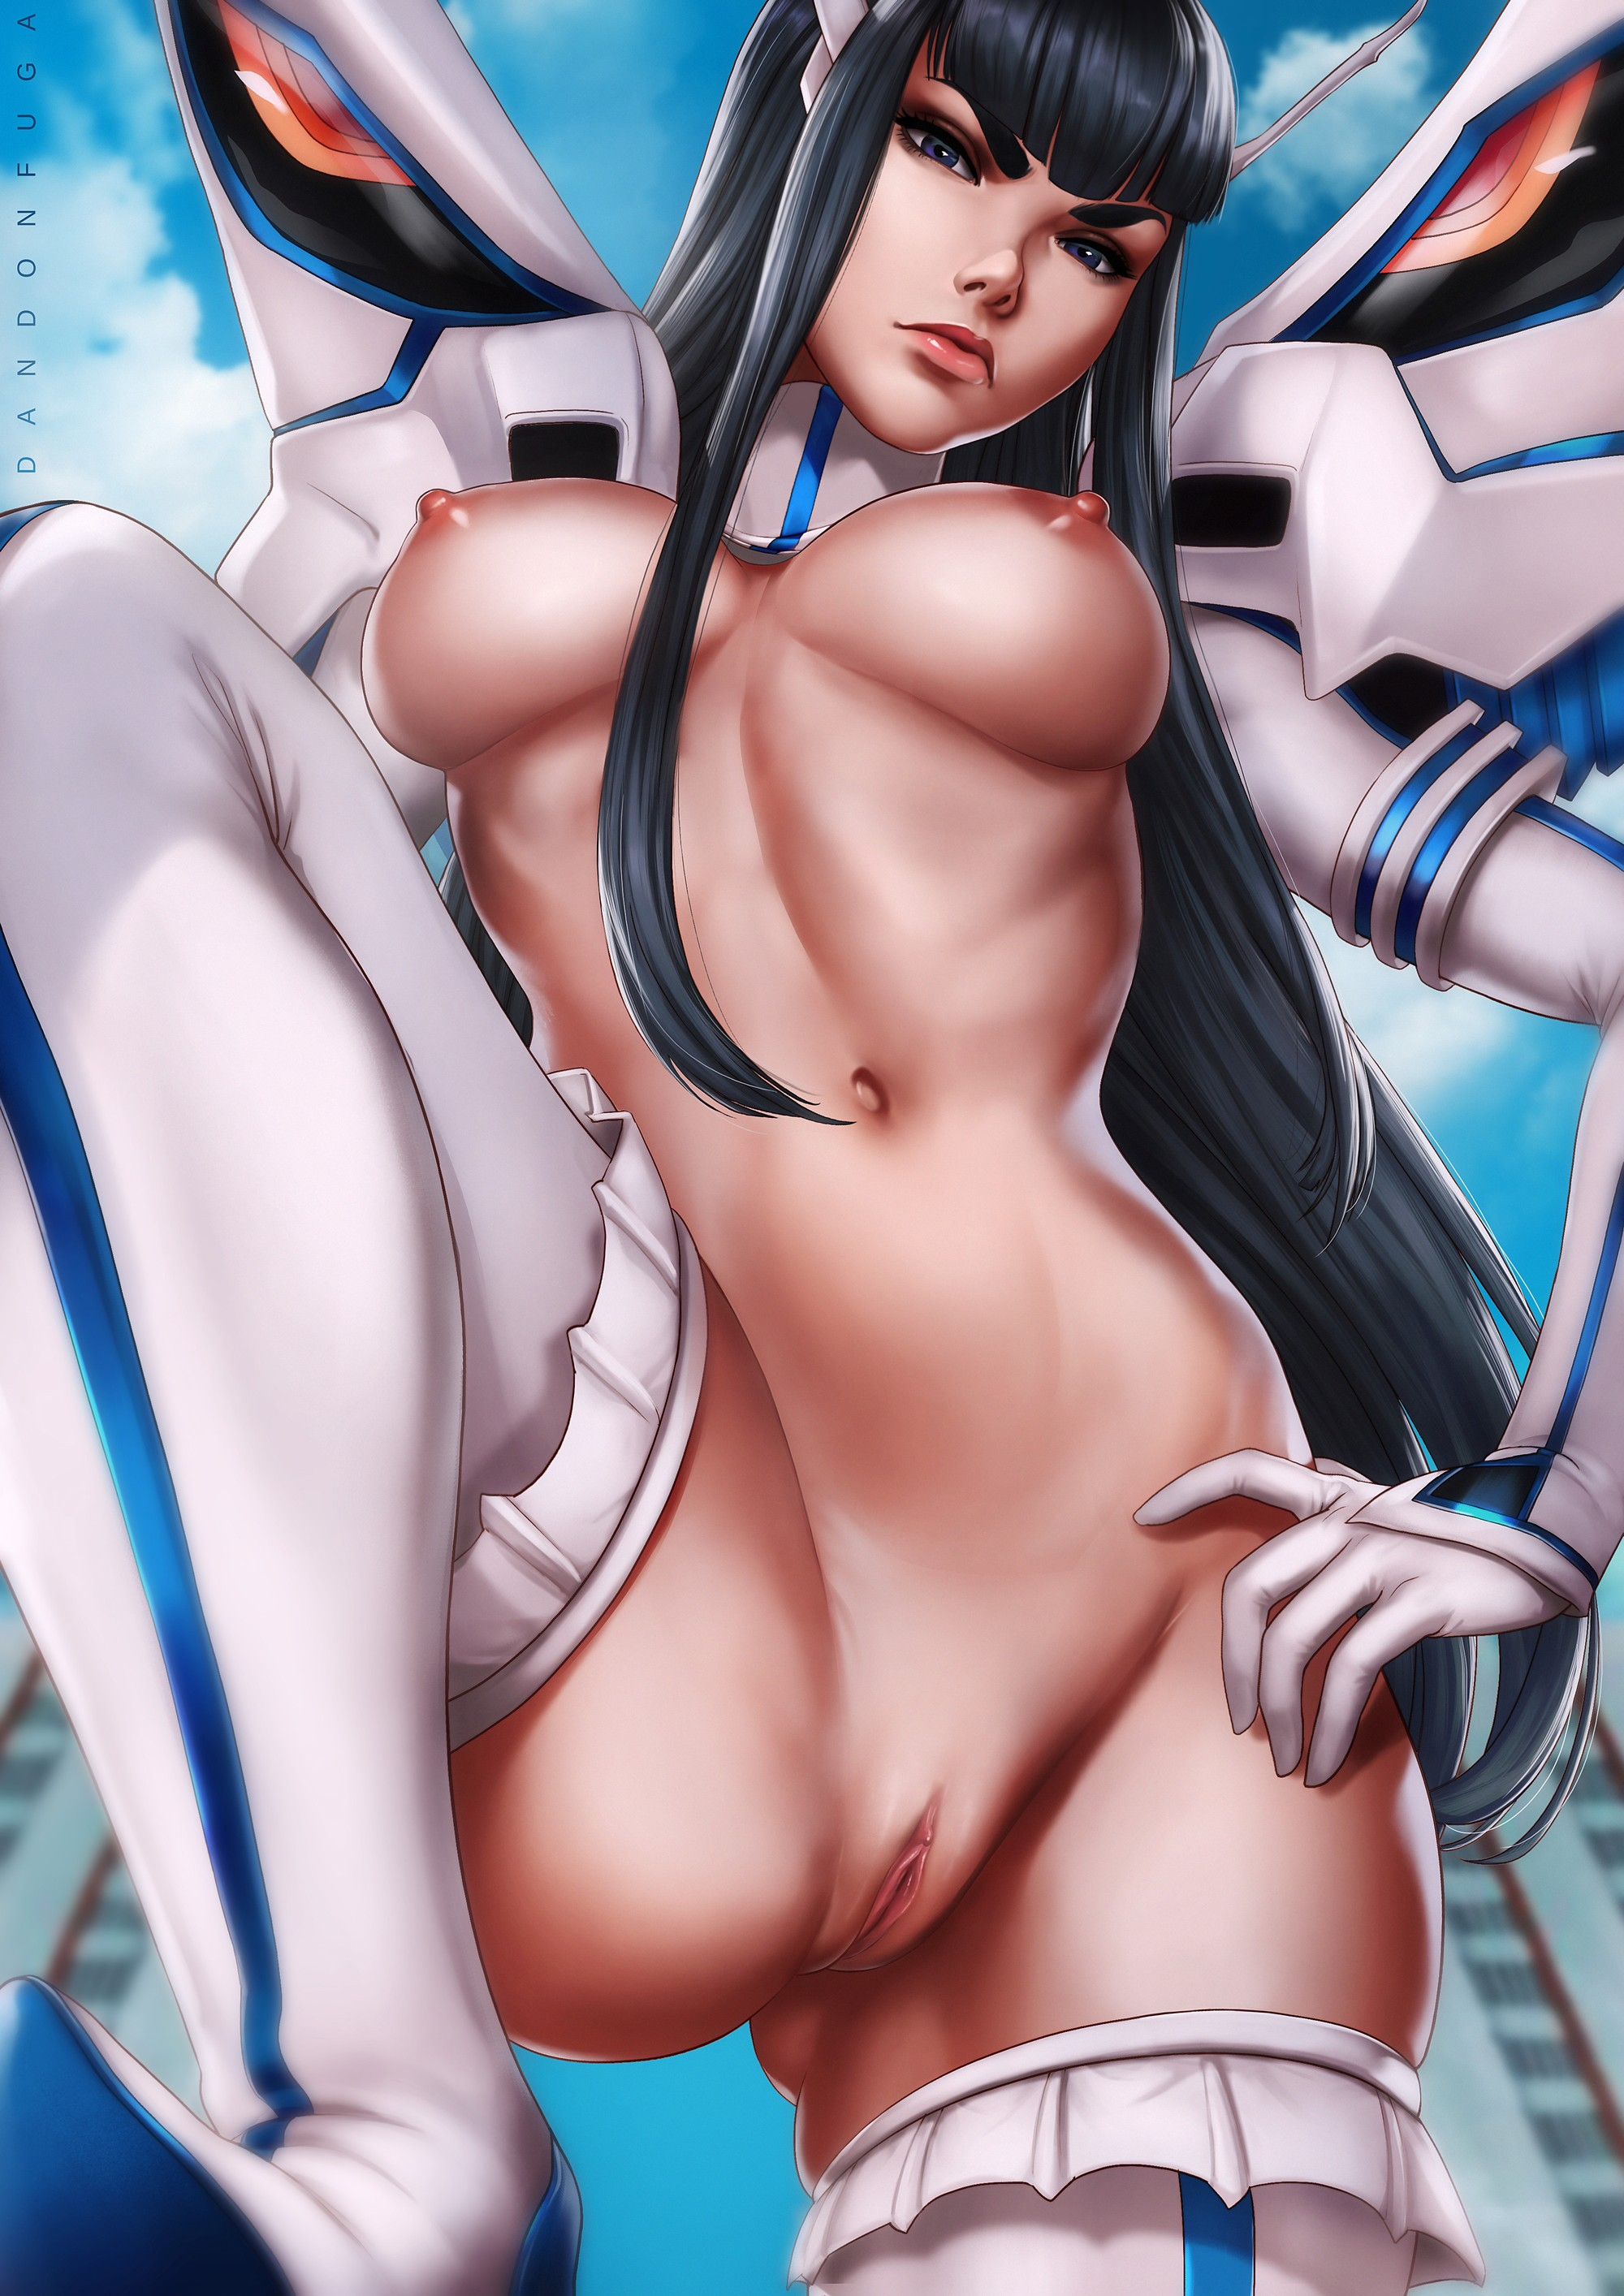 Hentai Drawings Of Satsuki Kiryuuin From Kill La Kill